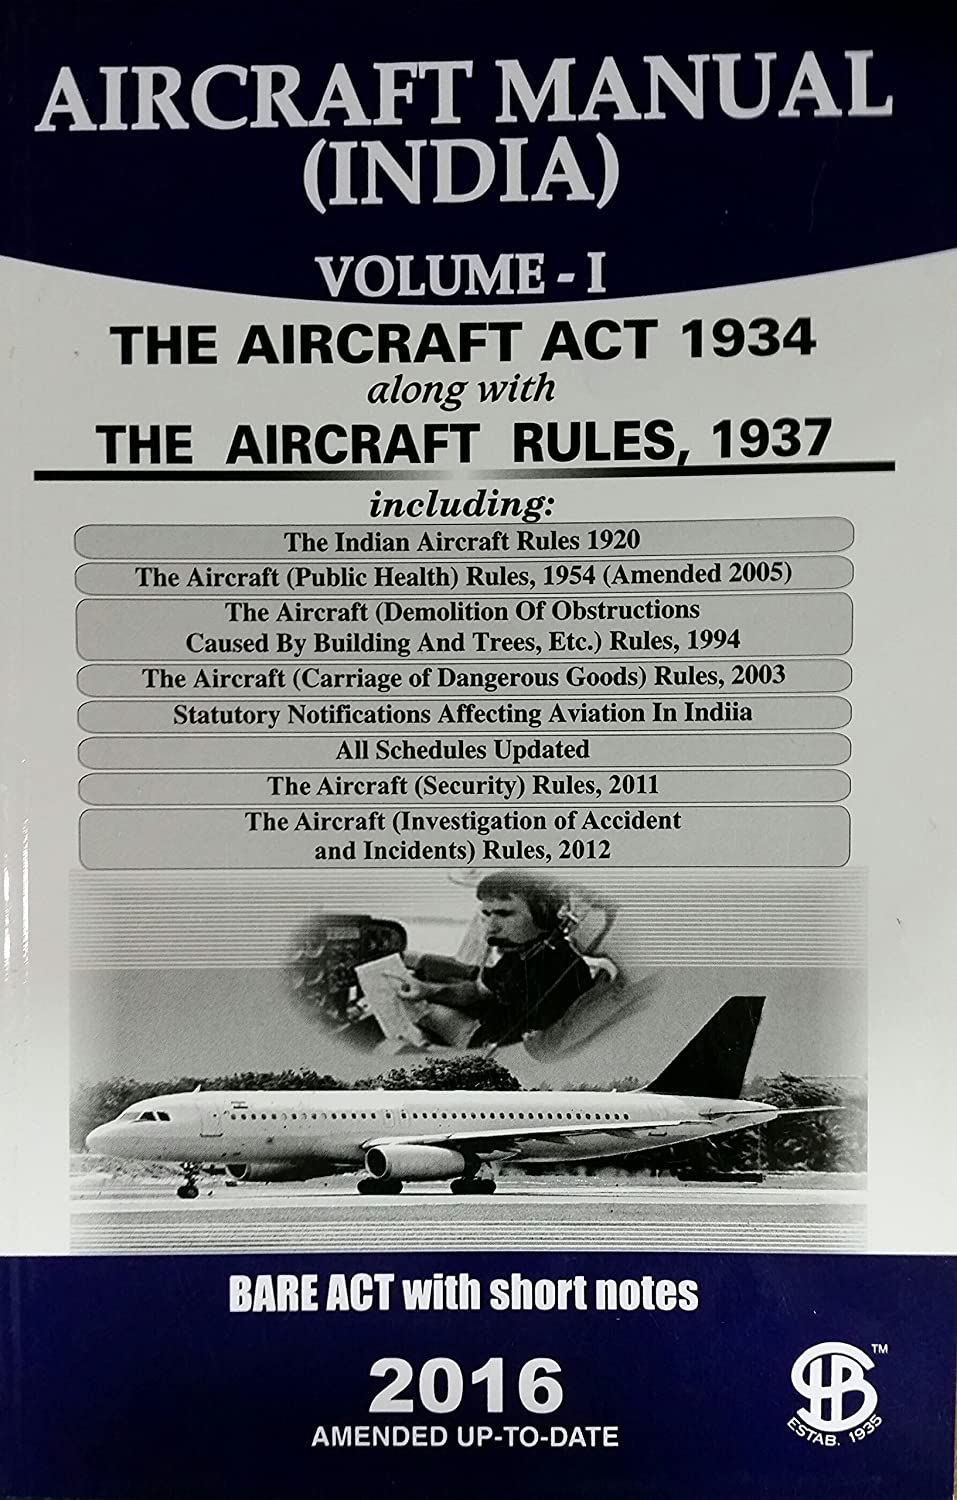 Aircraft manual (india) volume i &ii: bare act with short notes.